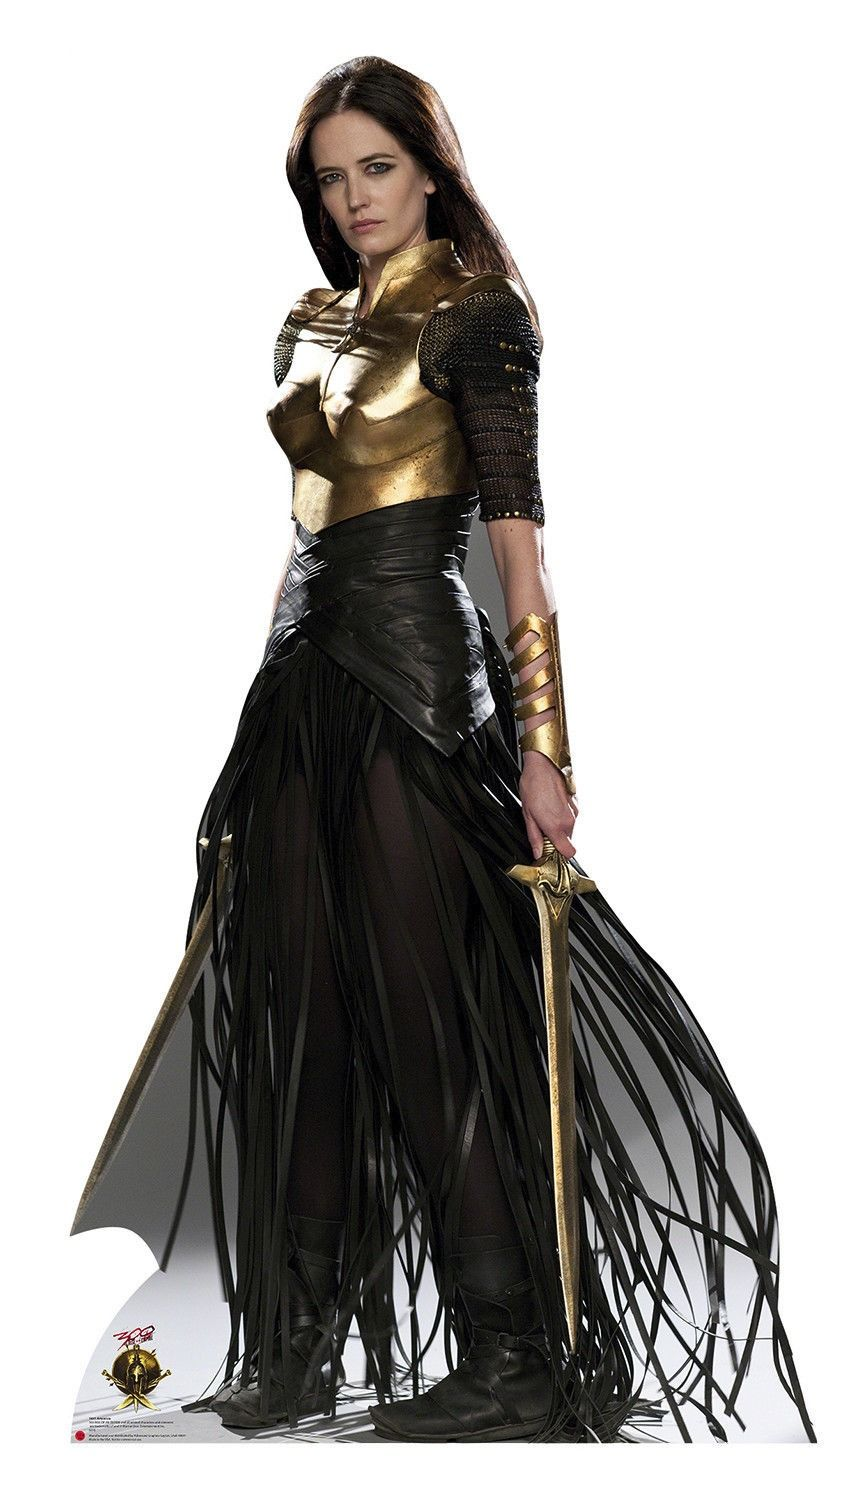 standee poster for Eva Green as Artemisia in 300: Rise of ...300 Rise Of An Empire Eva Green Dress